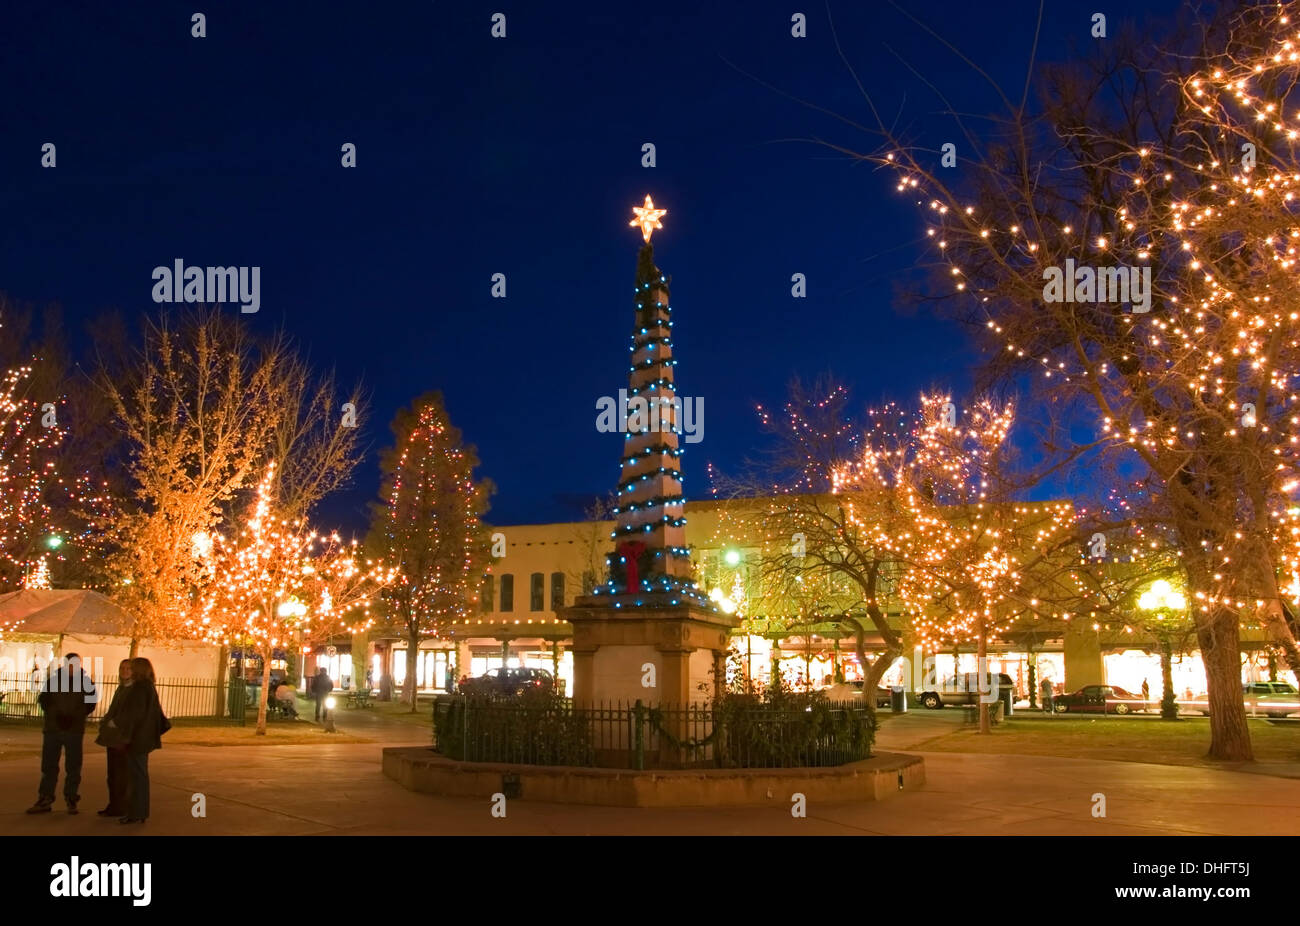 Santa Fe Plaza And Christmas Lights New Mexico Usa Stock Photo Alamy